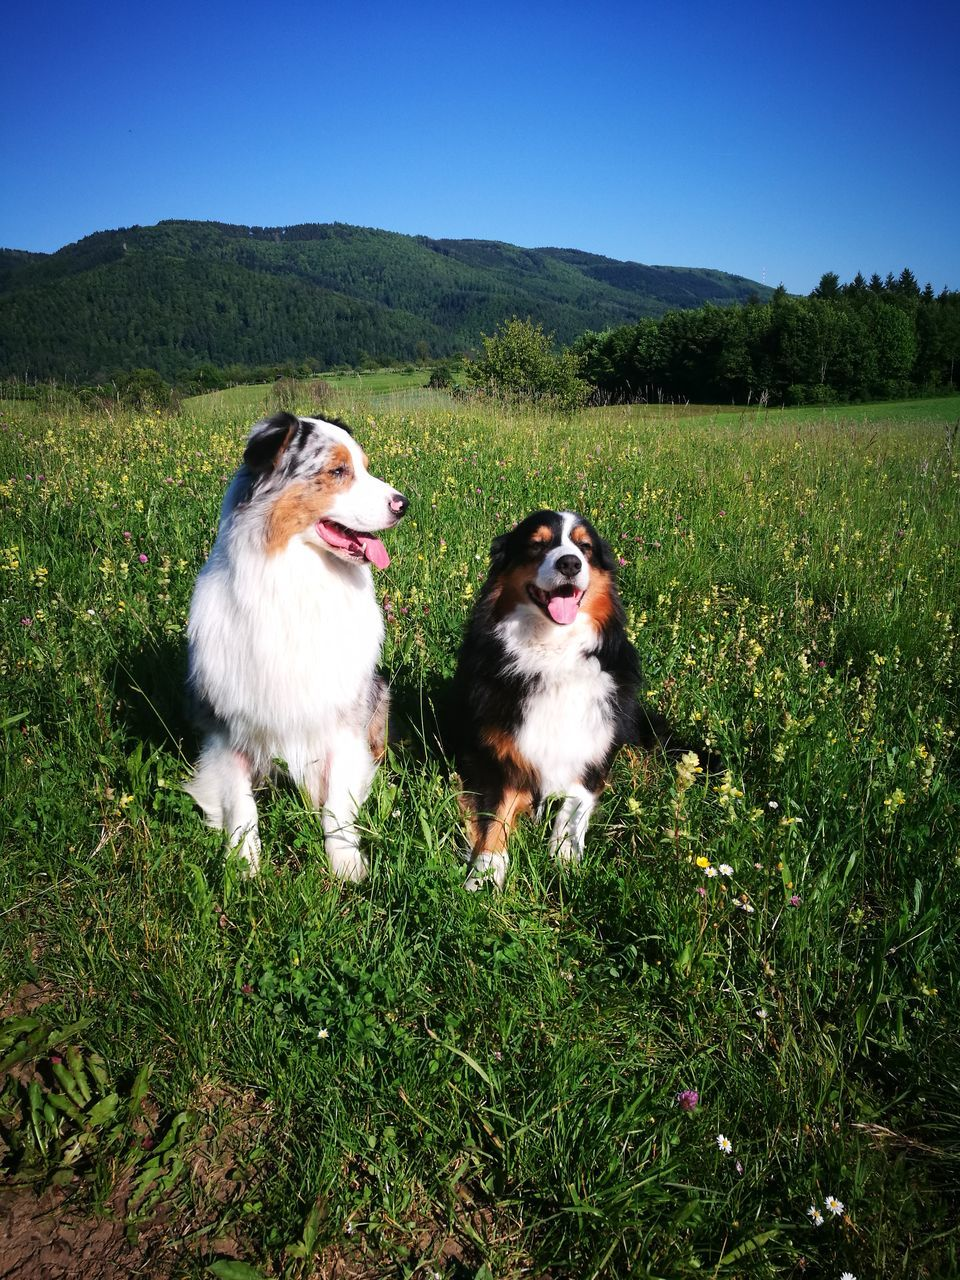 dog, domestic animals, pets, field, nature, animal themes, mammal, growth, grass, no people, outdoors, day, beauty in nature, landscape, clear sky, sky